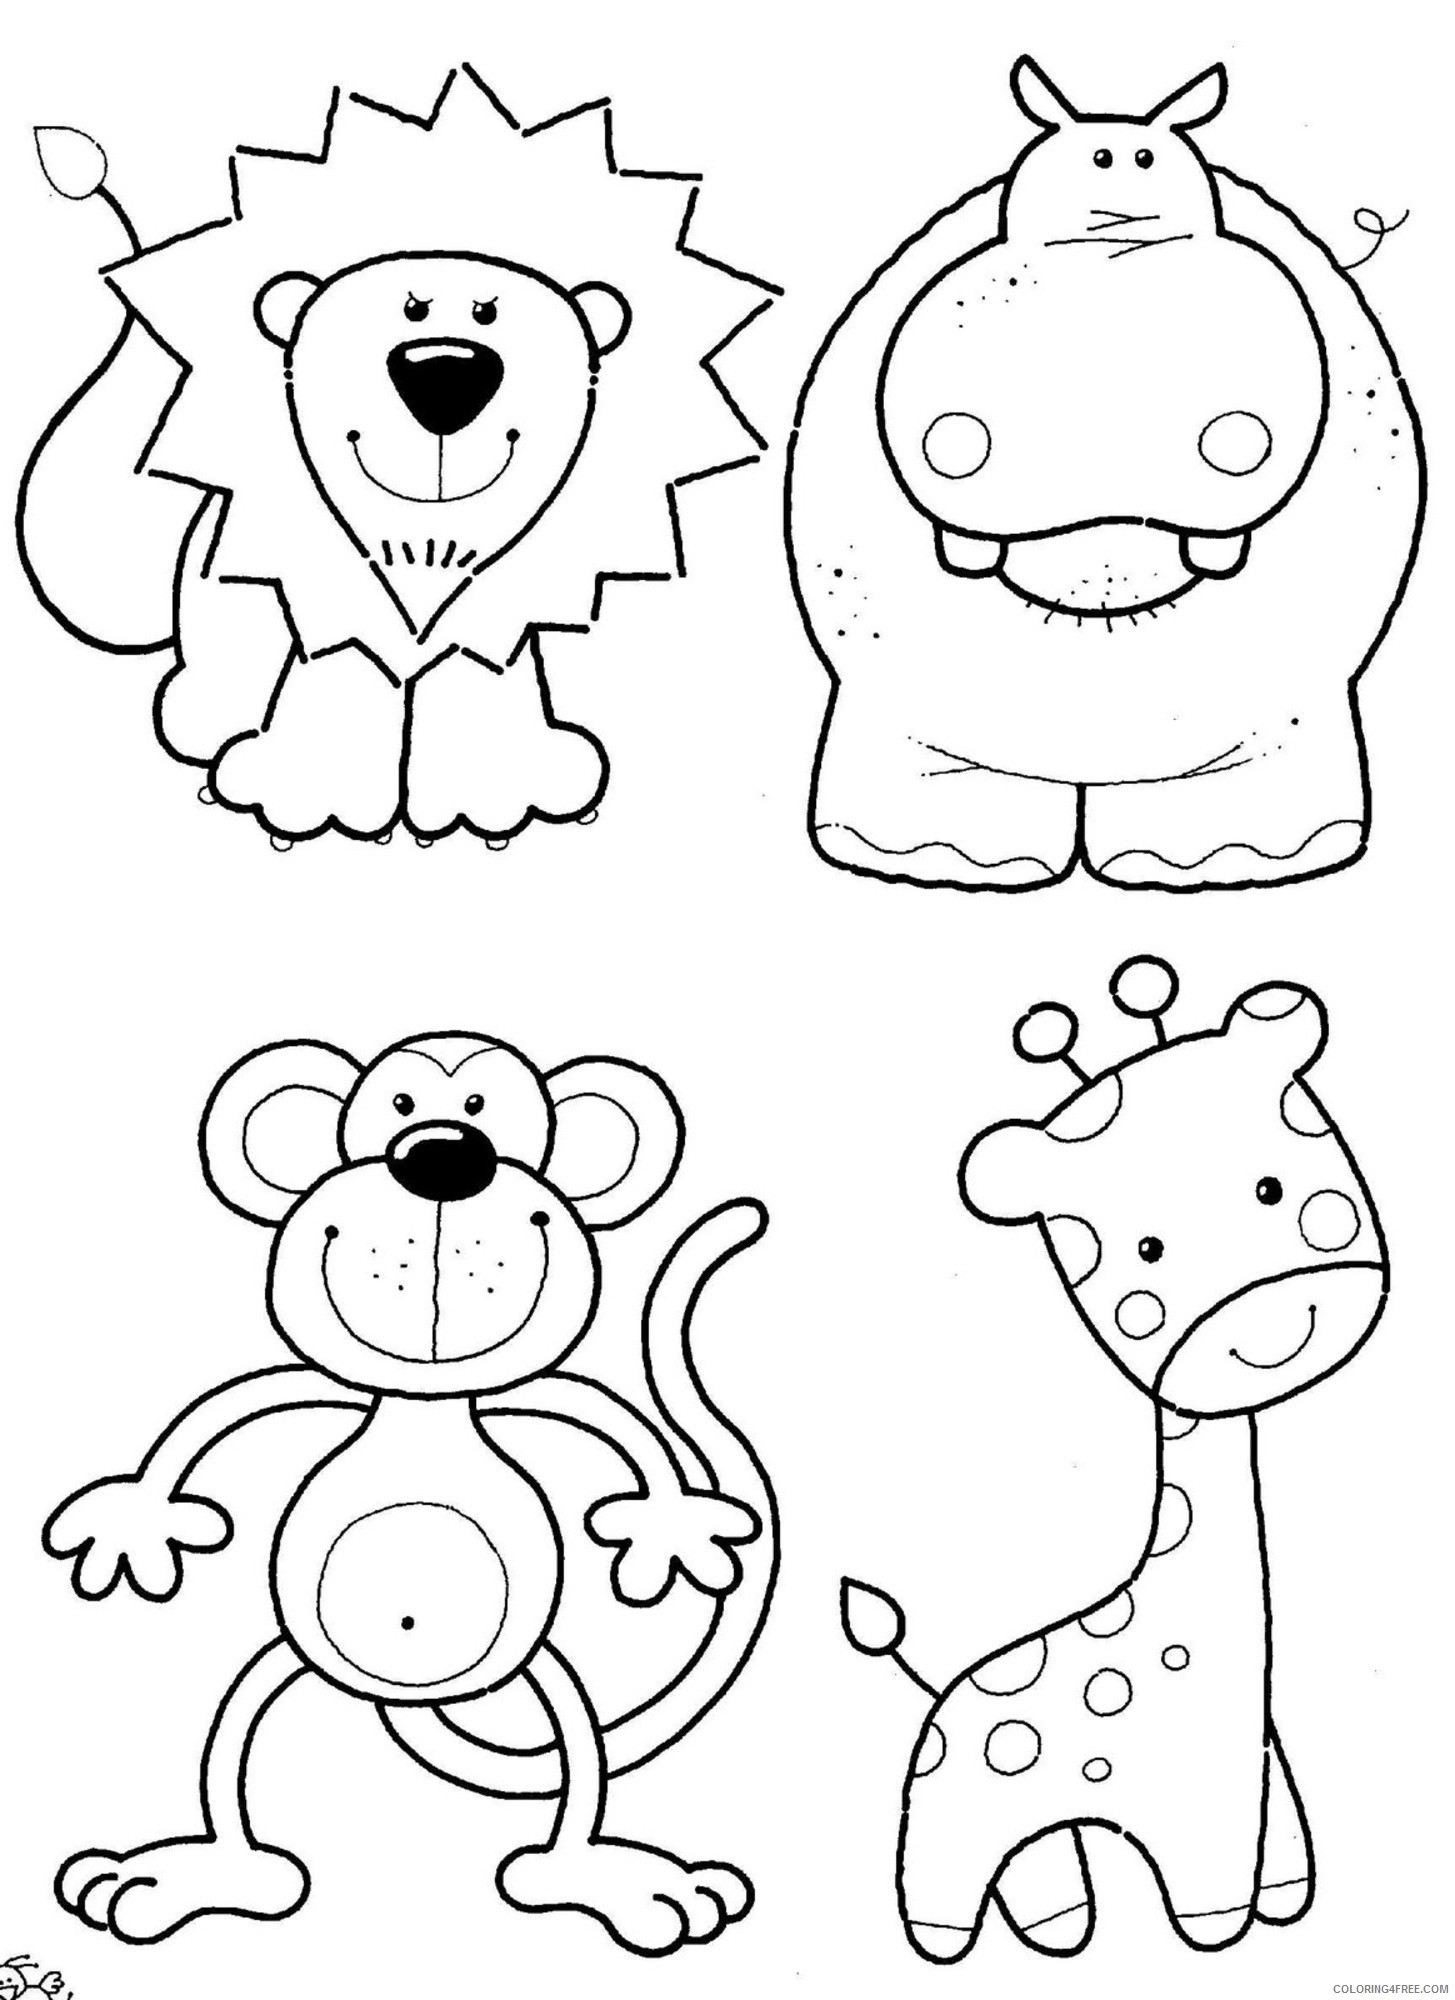 cute zoo animals coloring pages Coloring4free